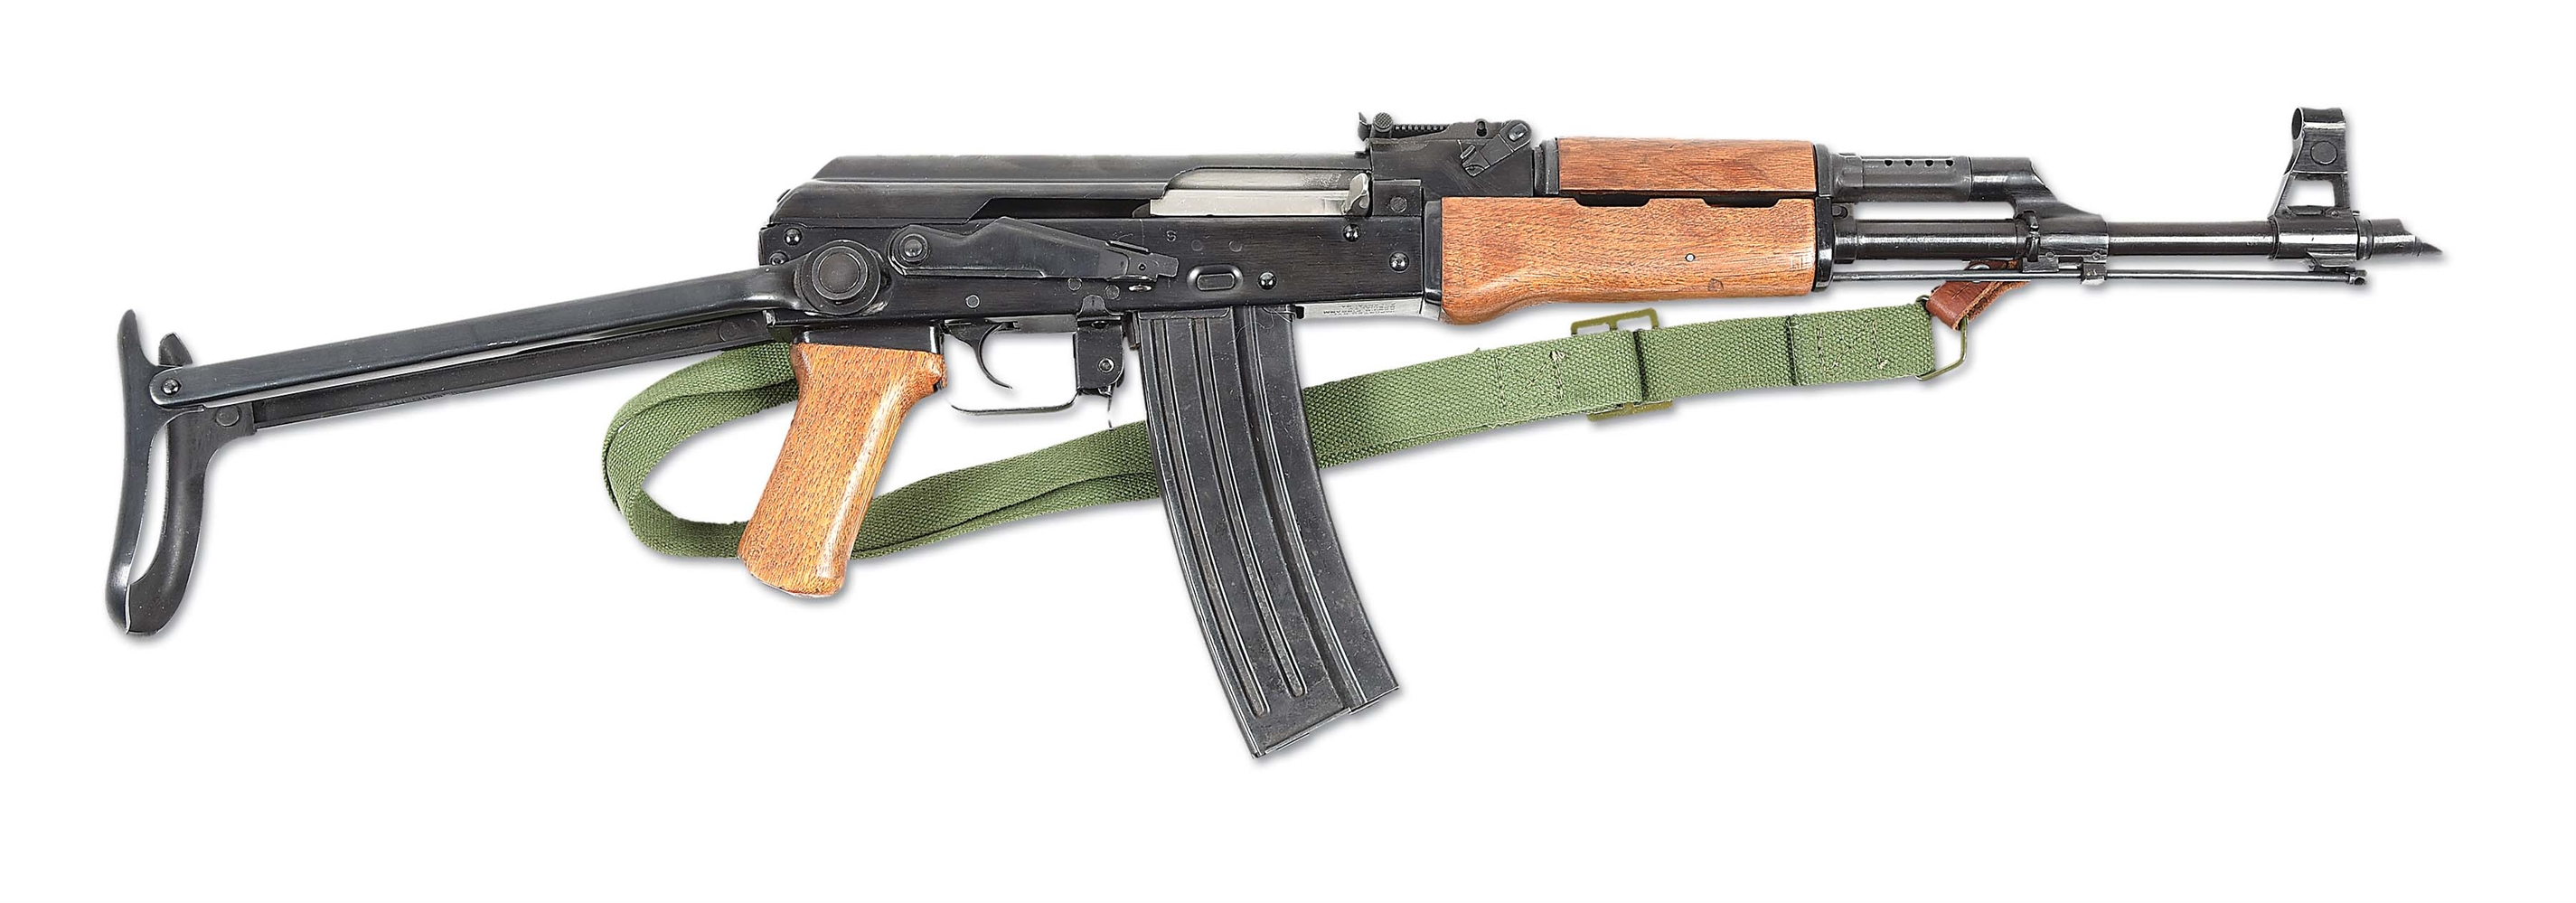 (N) VERY ATTRACTIVE CHINESE UNDER-FOLDING STOCK AKS-223 MACHINE GUN (FULLY TRANSFERABLE).